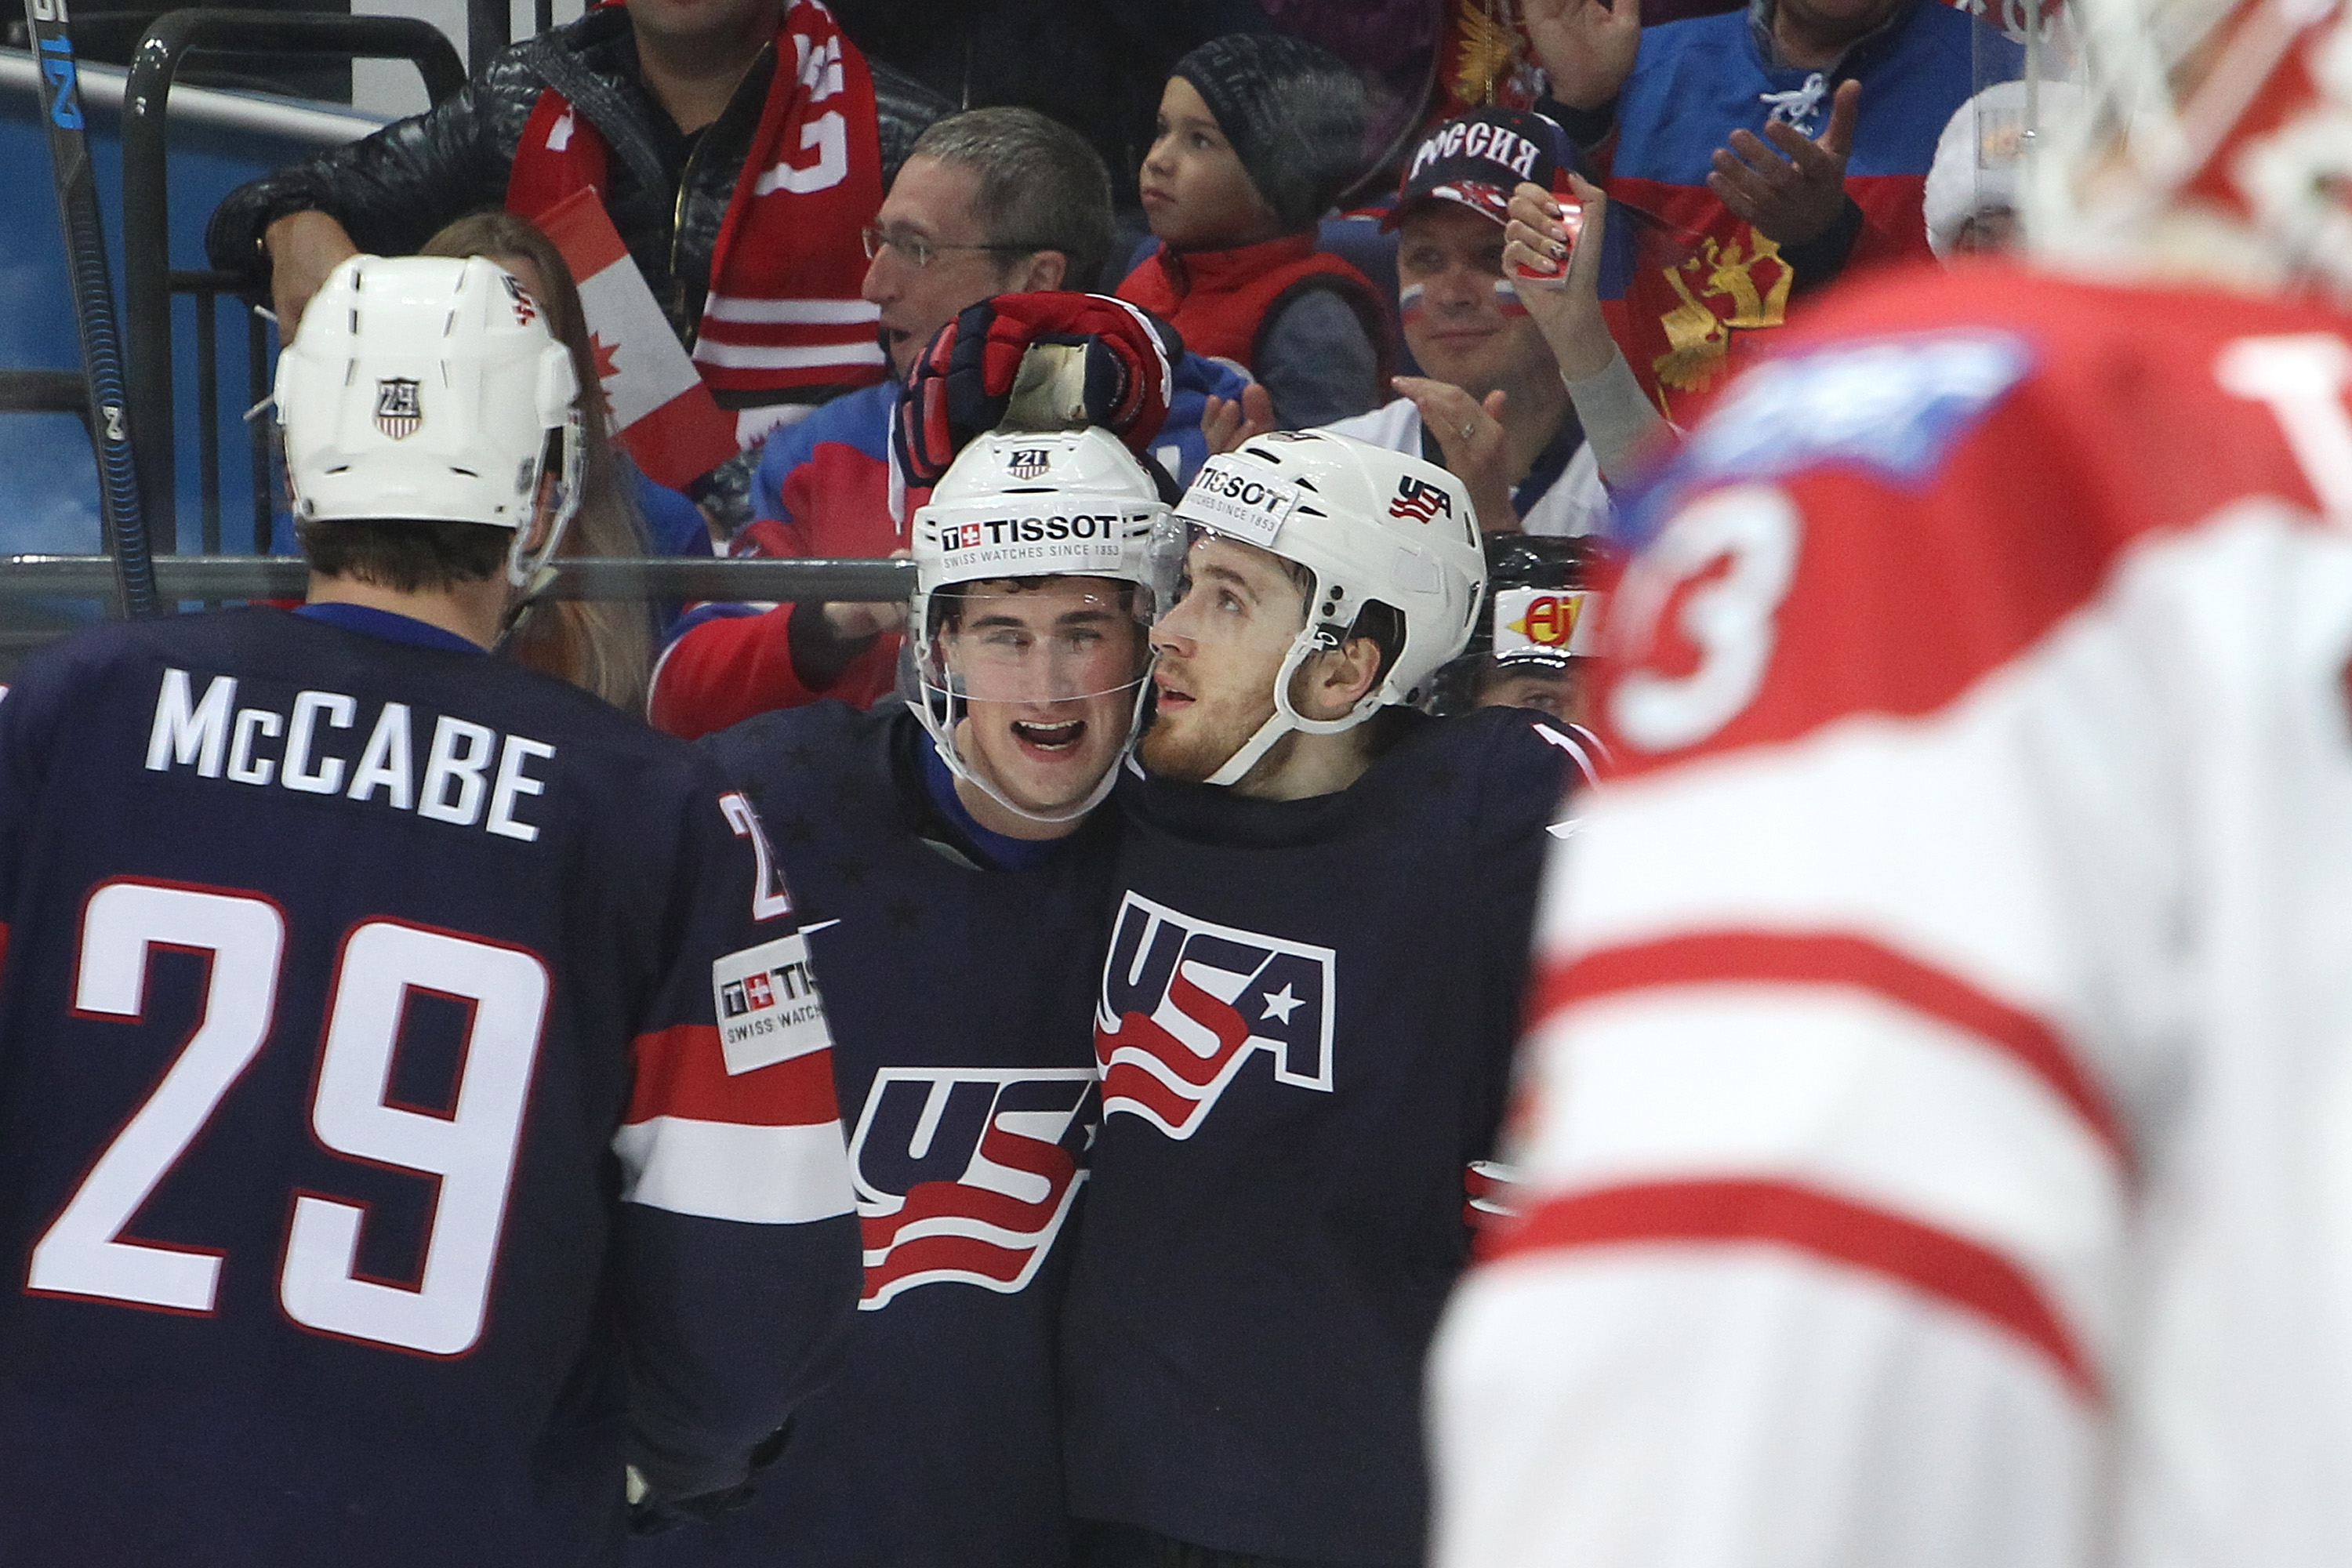 The Sabres' Jake McCabe joined Dylan Larkin and Tyler Motte in representing the United States at last year's world championships. (Getty Images)